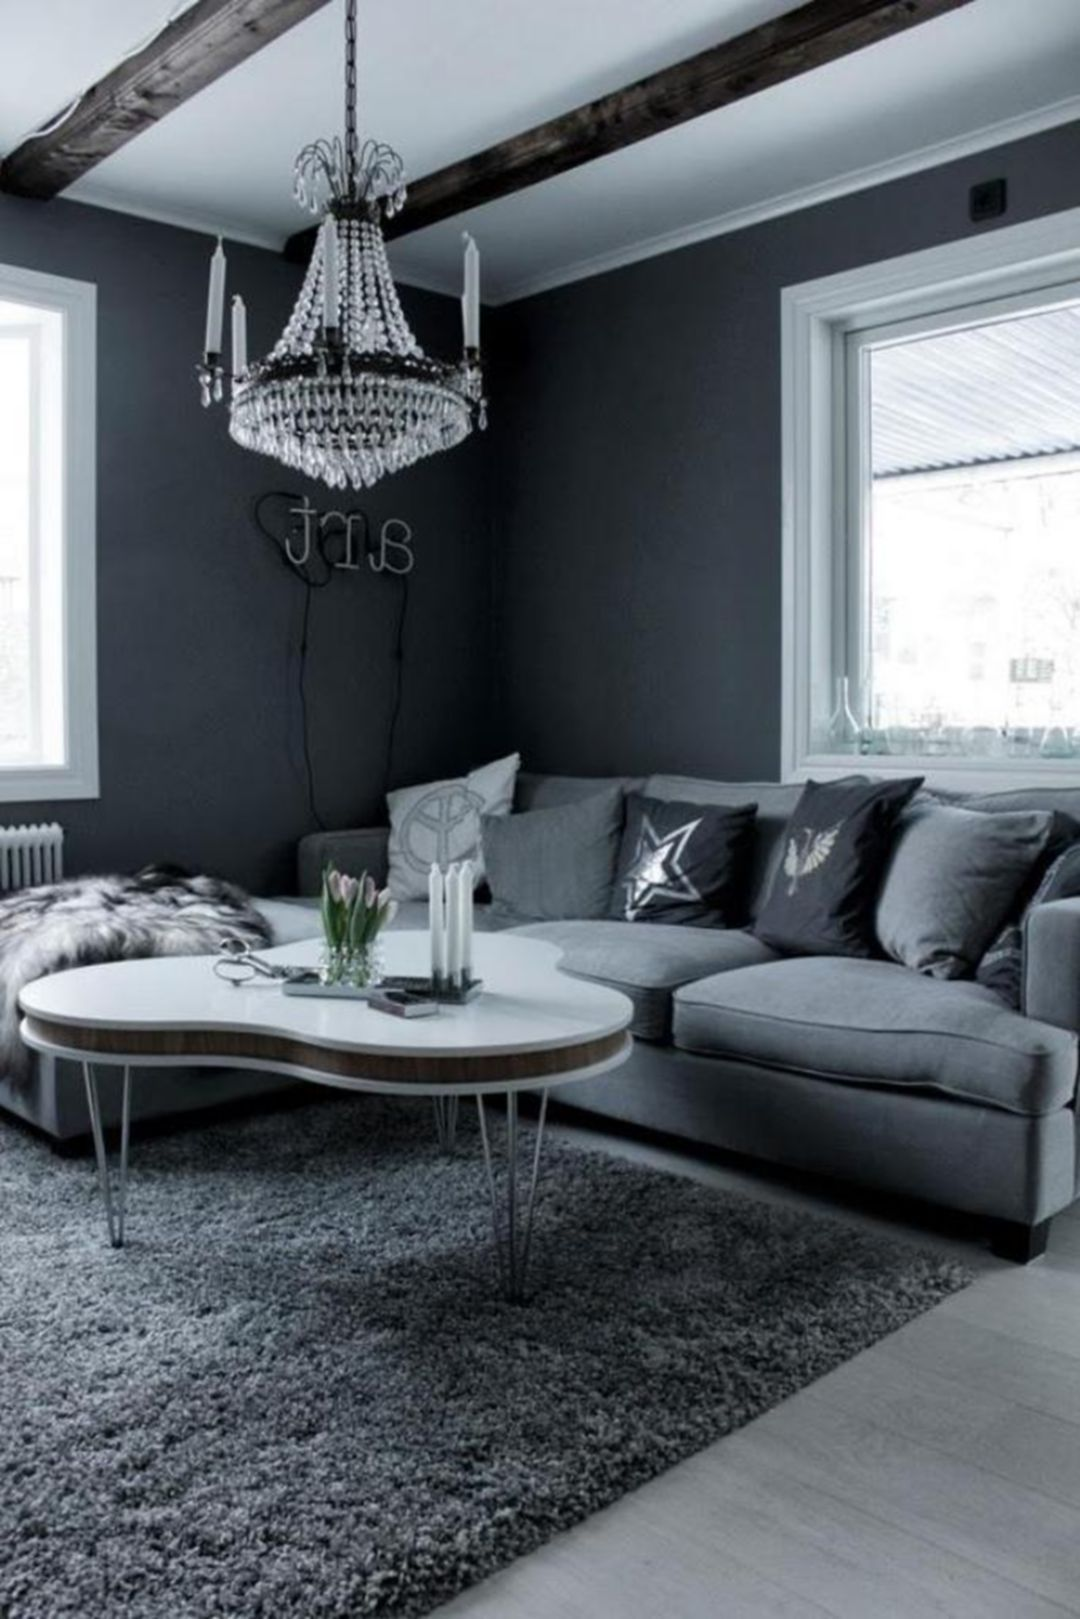 25 gorgeous gray interior paint schemes ideas for your on interior painting ideas color schemes id=91951